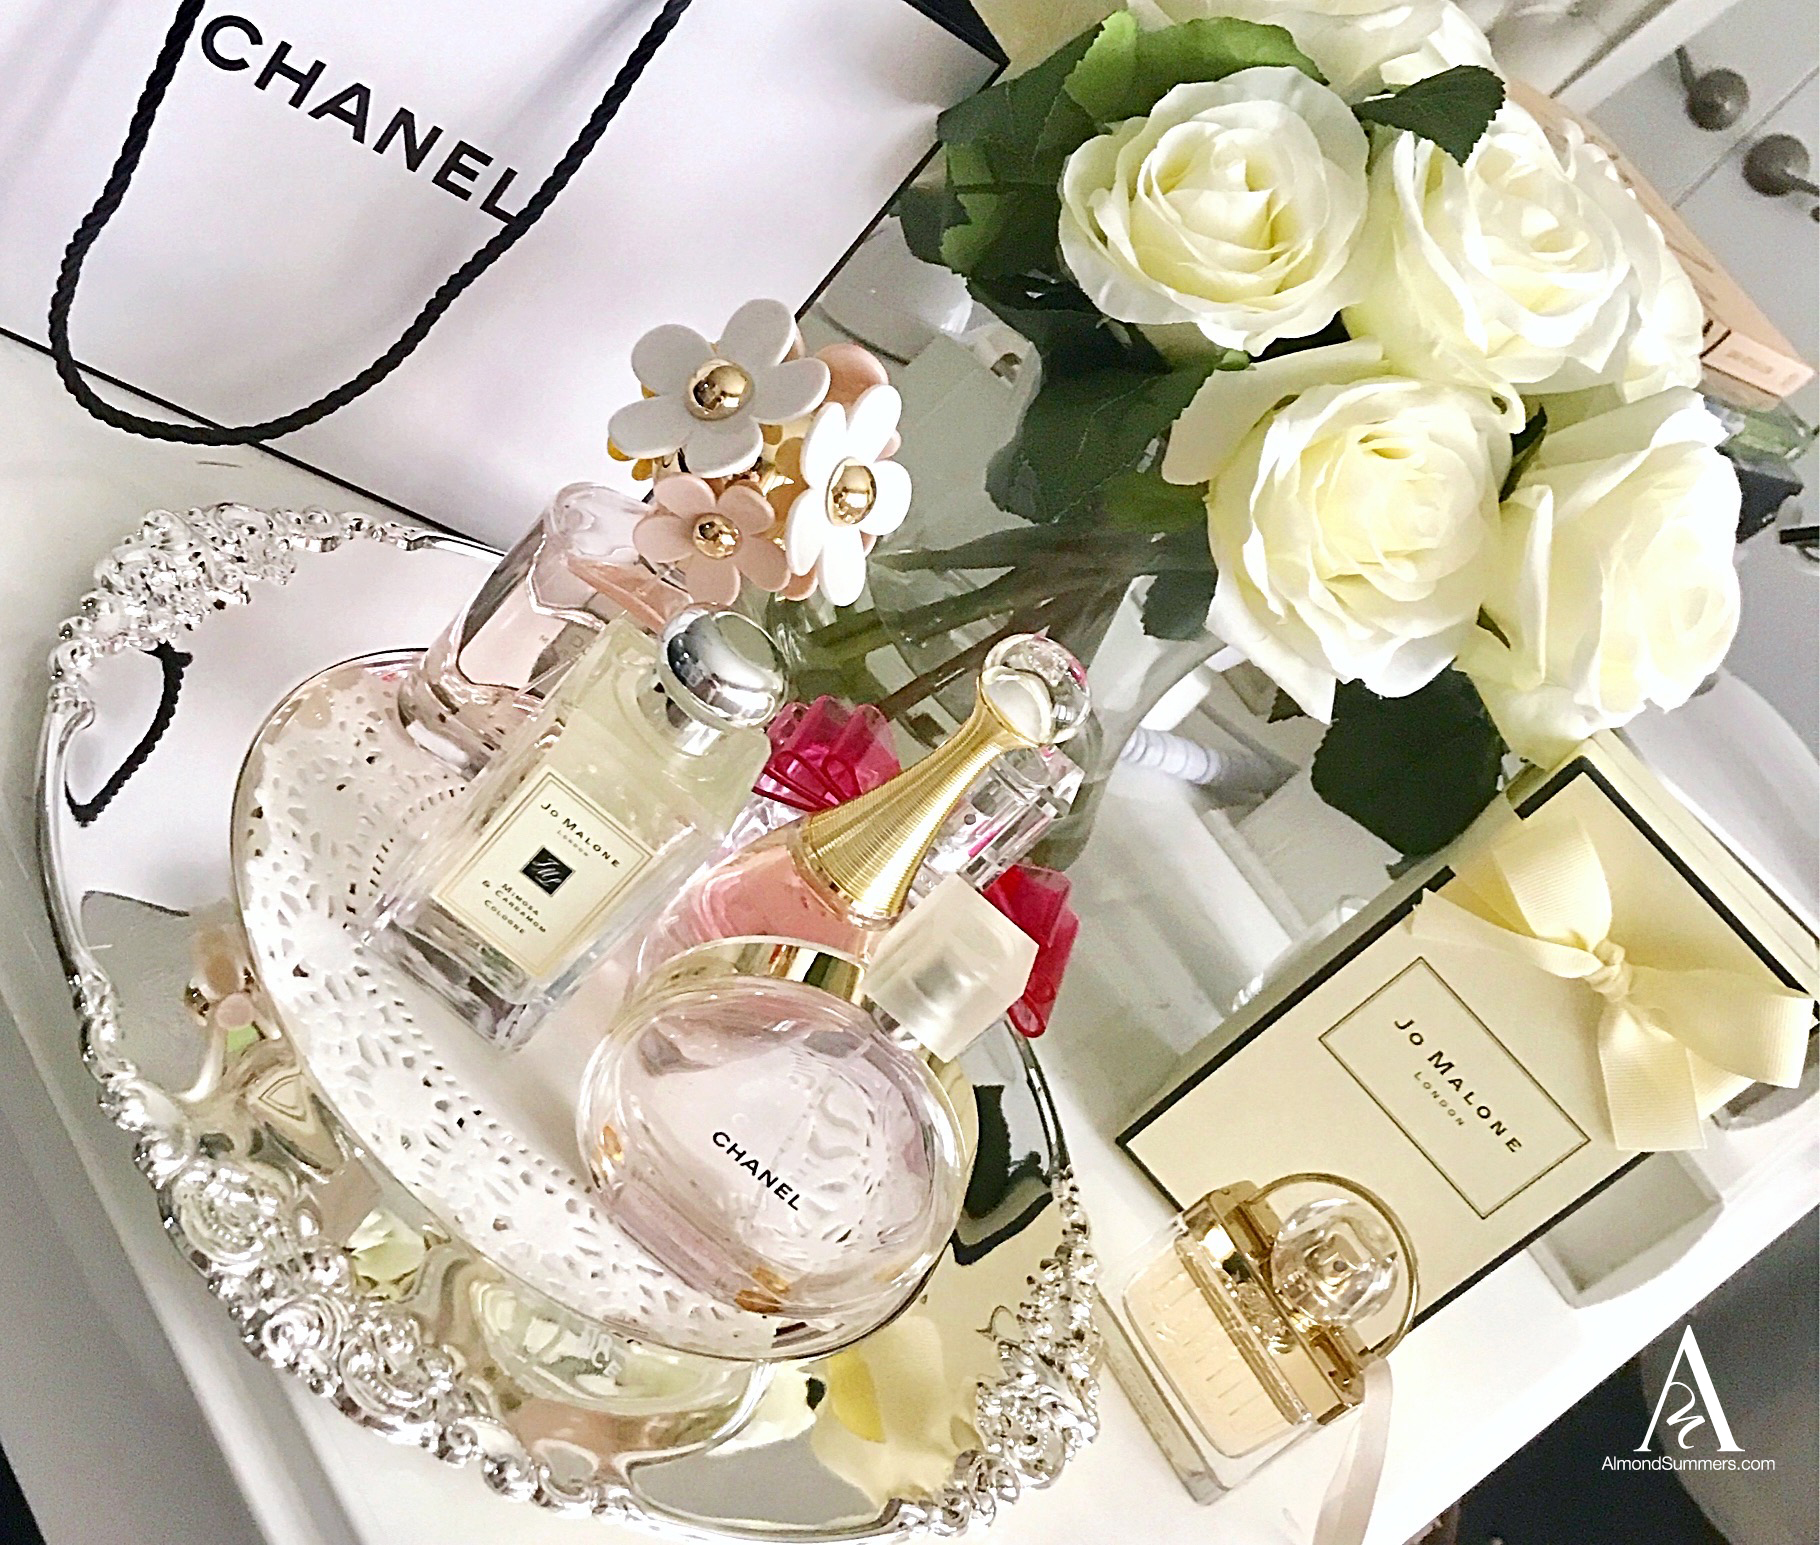 Best Fresh Scent Perfumes | Best Fresh Scent Women's Perfumes | Fresh Scent Fragrances for girls gifts | buying perfume online | Fresh Scent Reviews